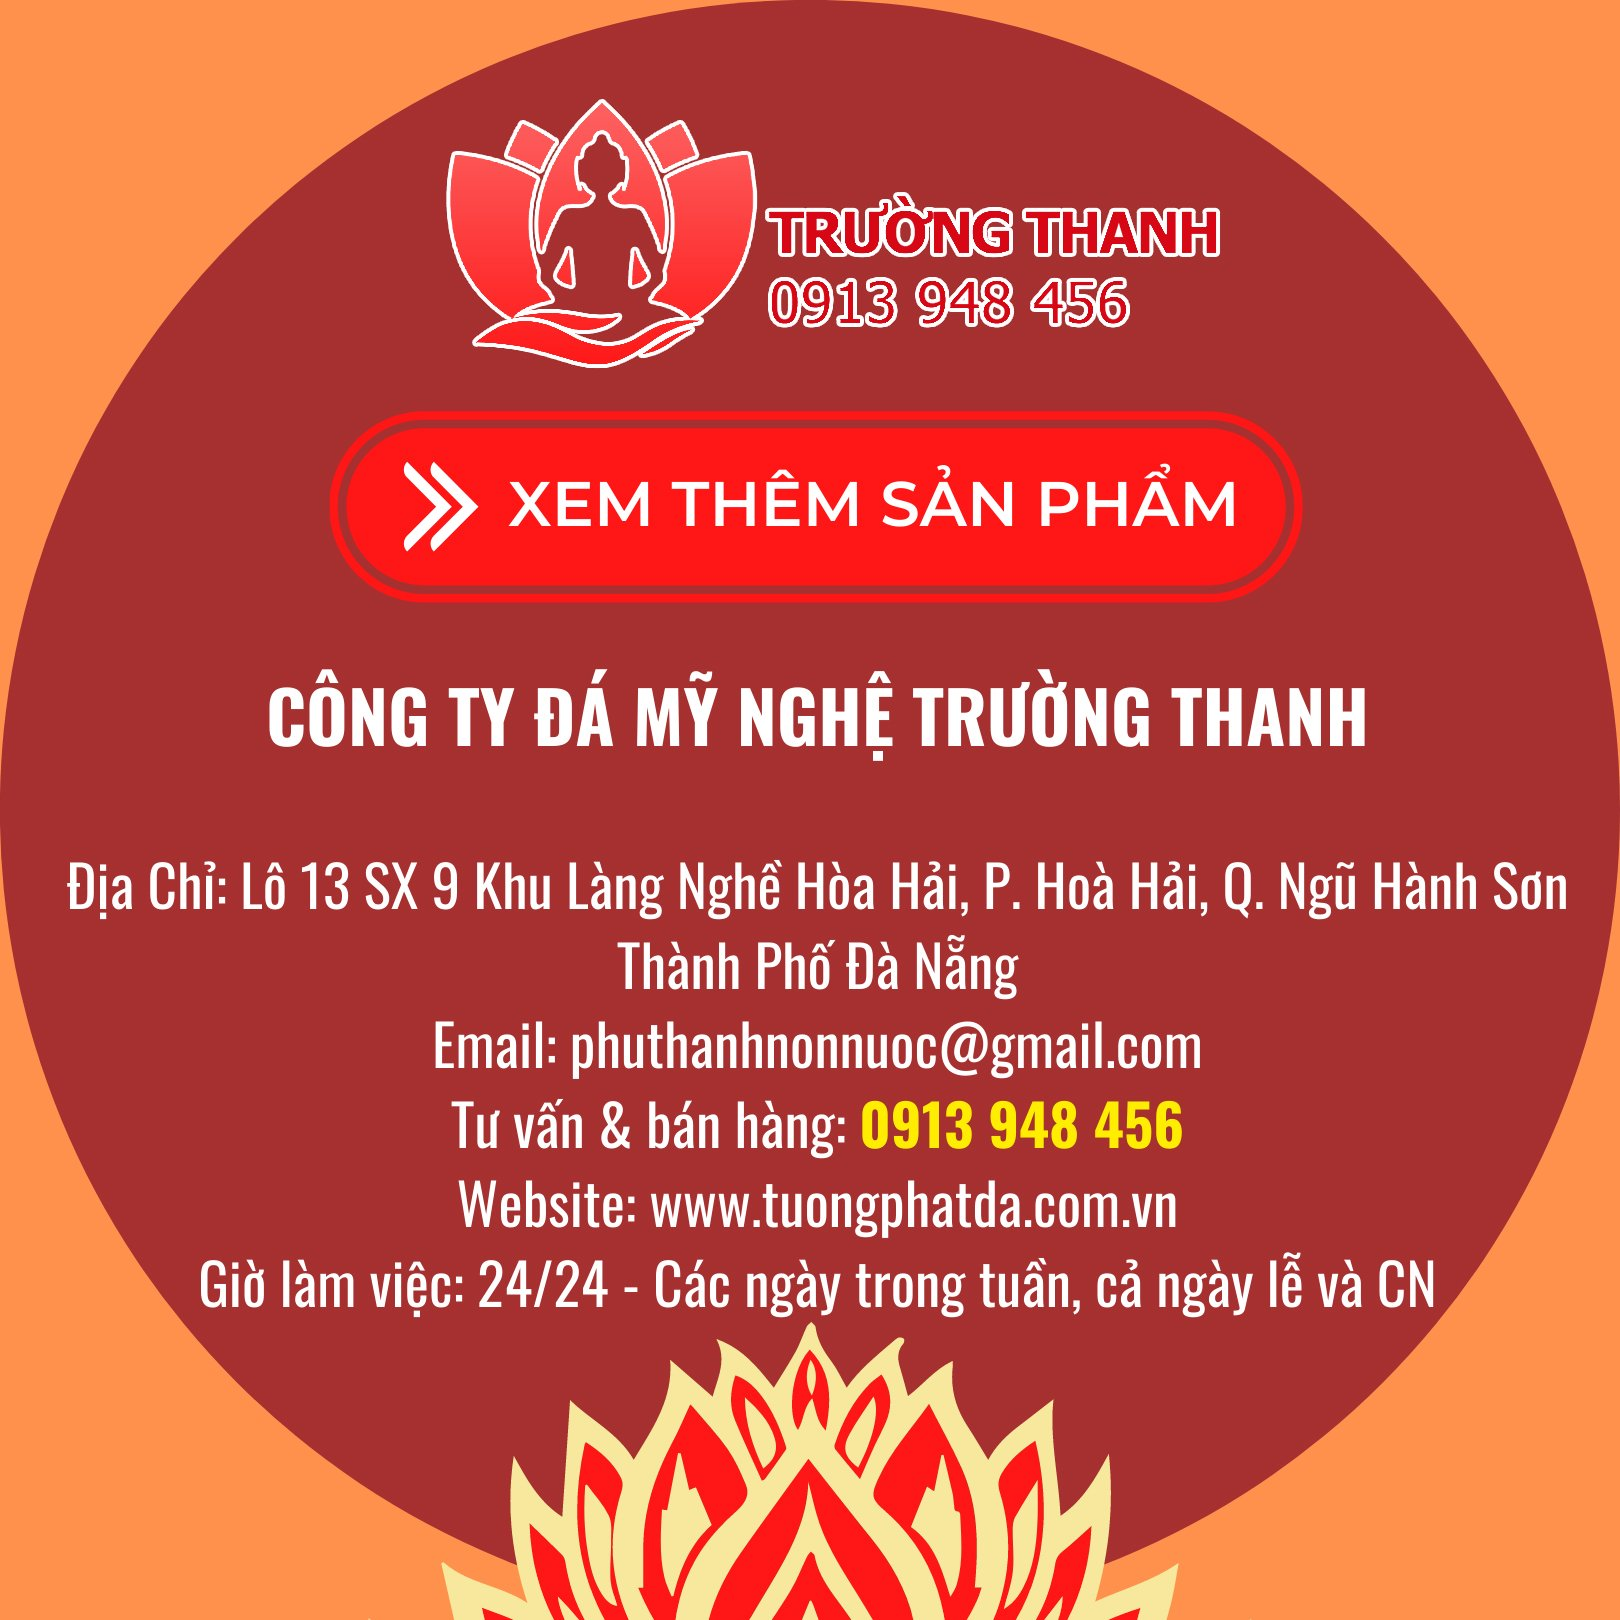 footer-tuong-phat-da-truong-thanh